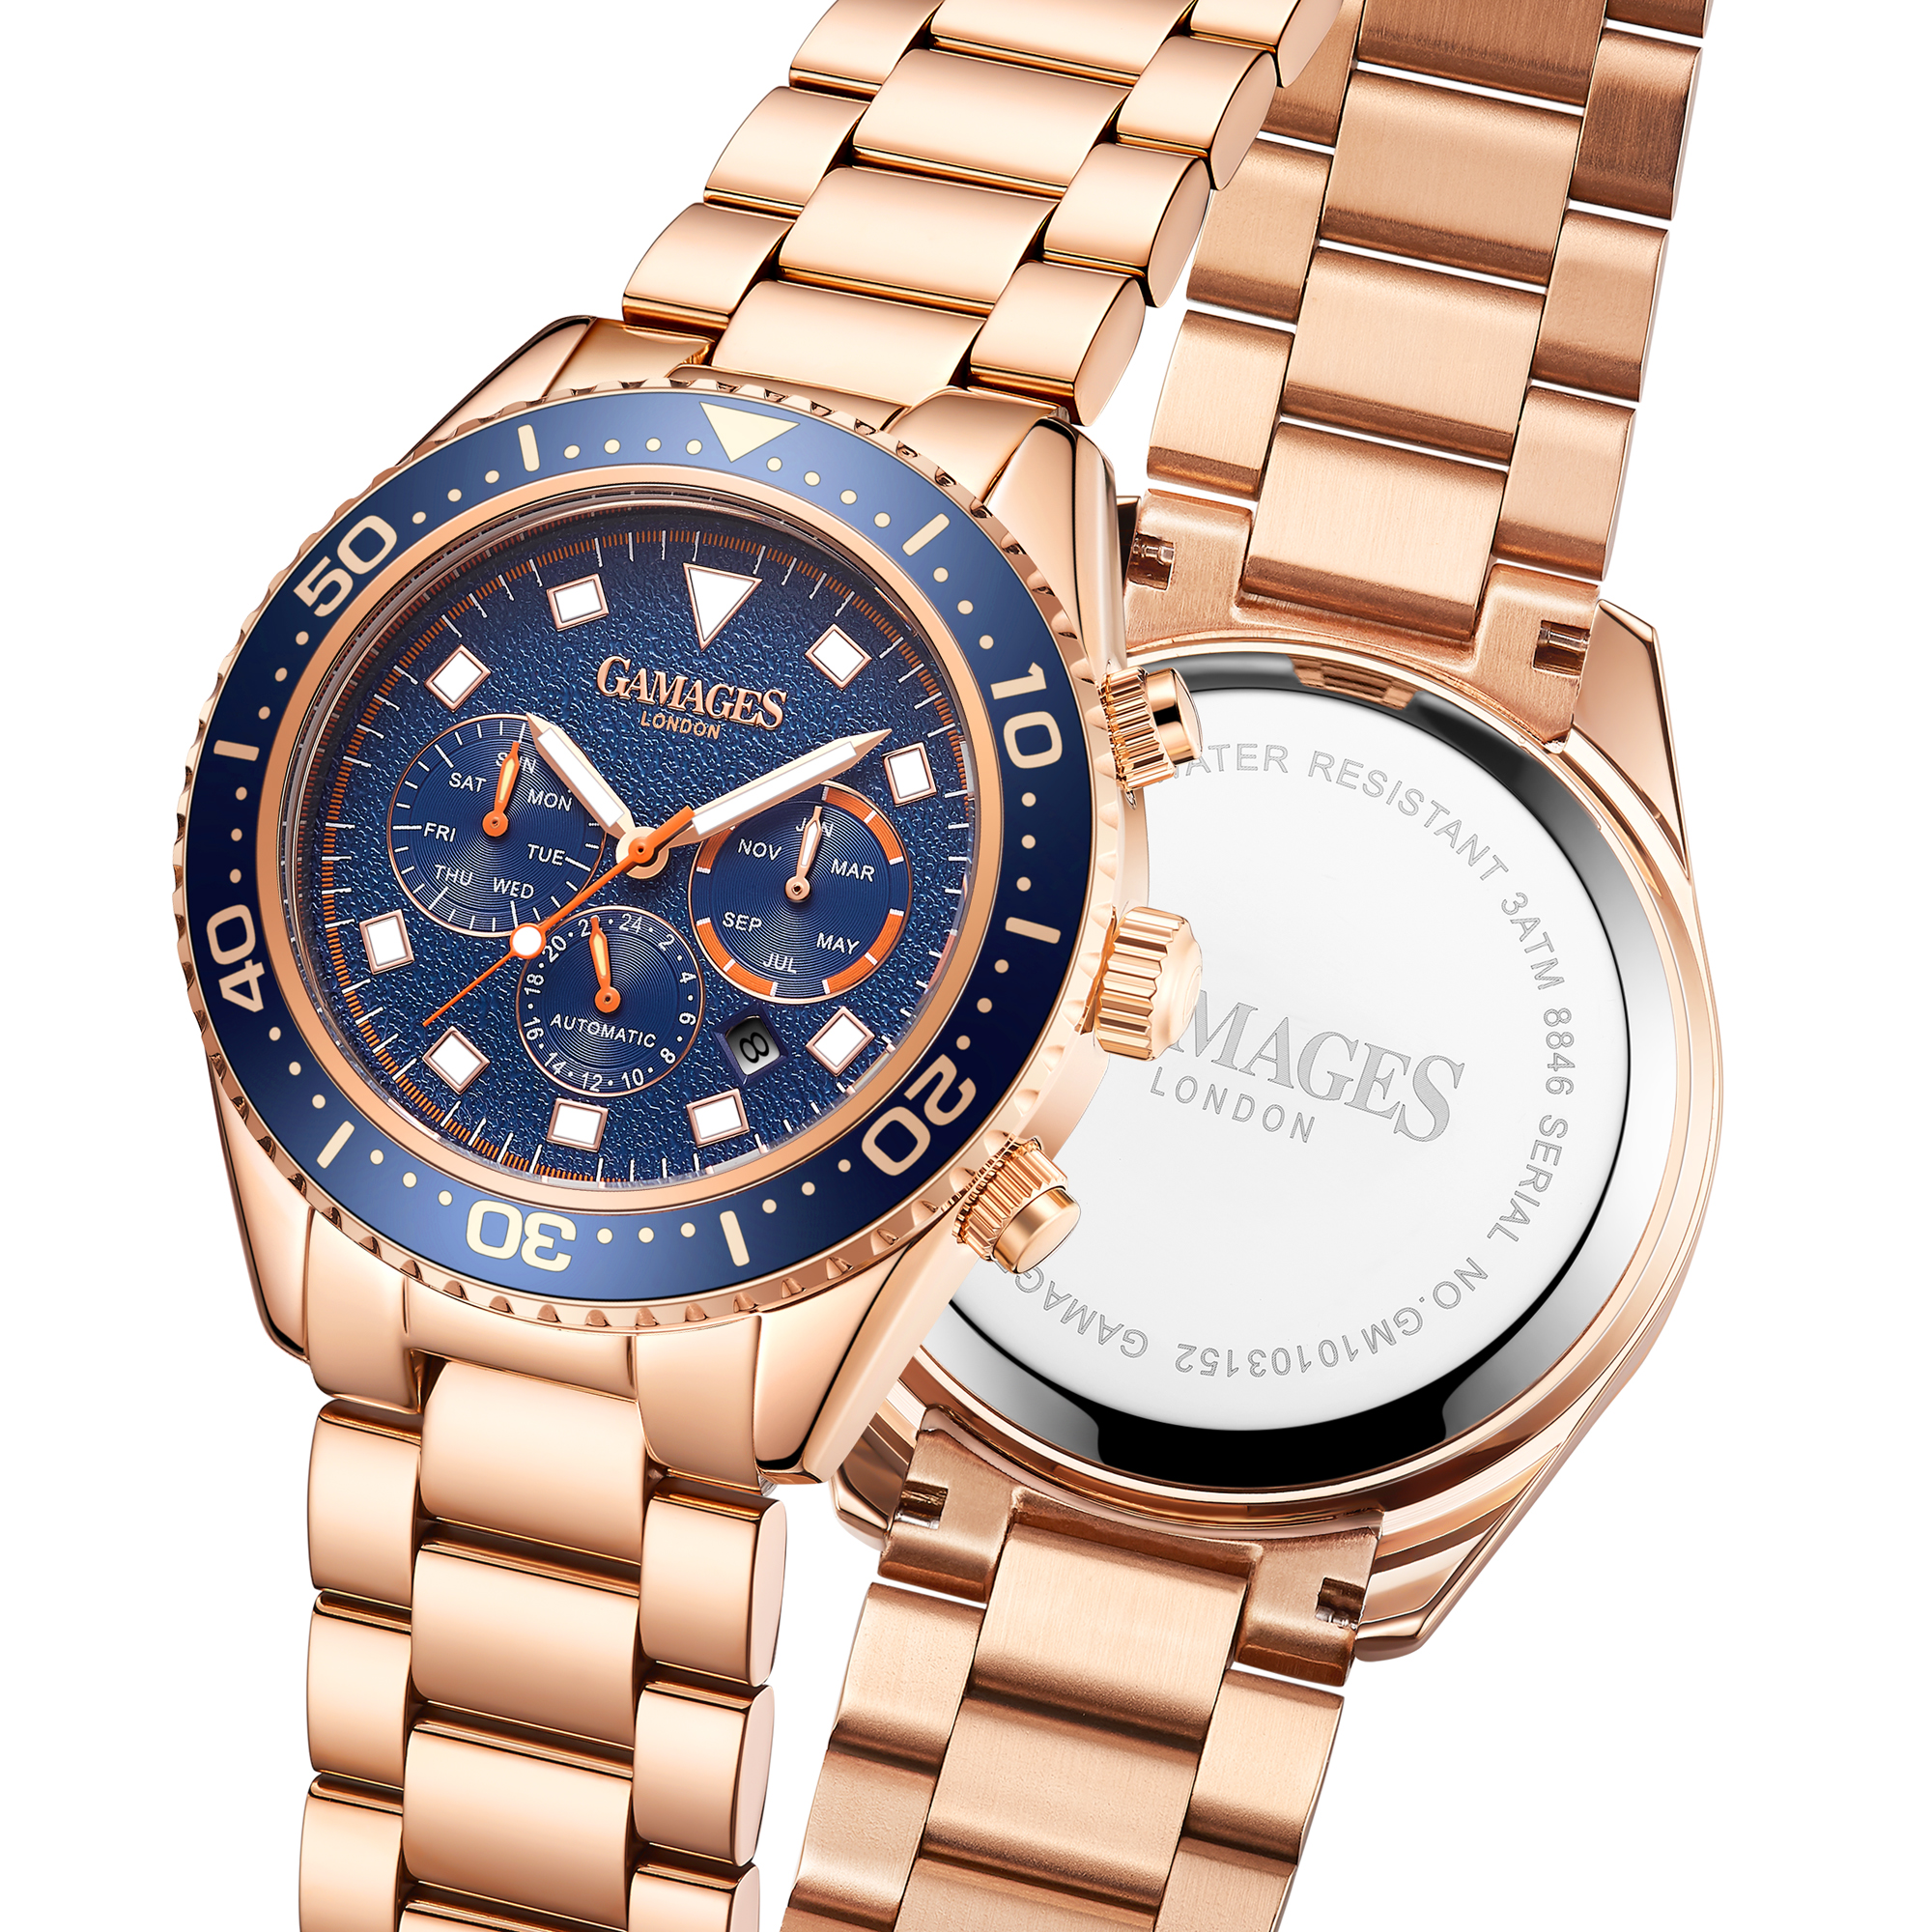 Limited Edition Hand Assembled Gamages Allure Automatic Rose – 5 Year Warranty & Free Delivery - Image 5 of 5